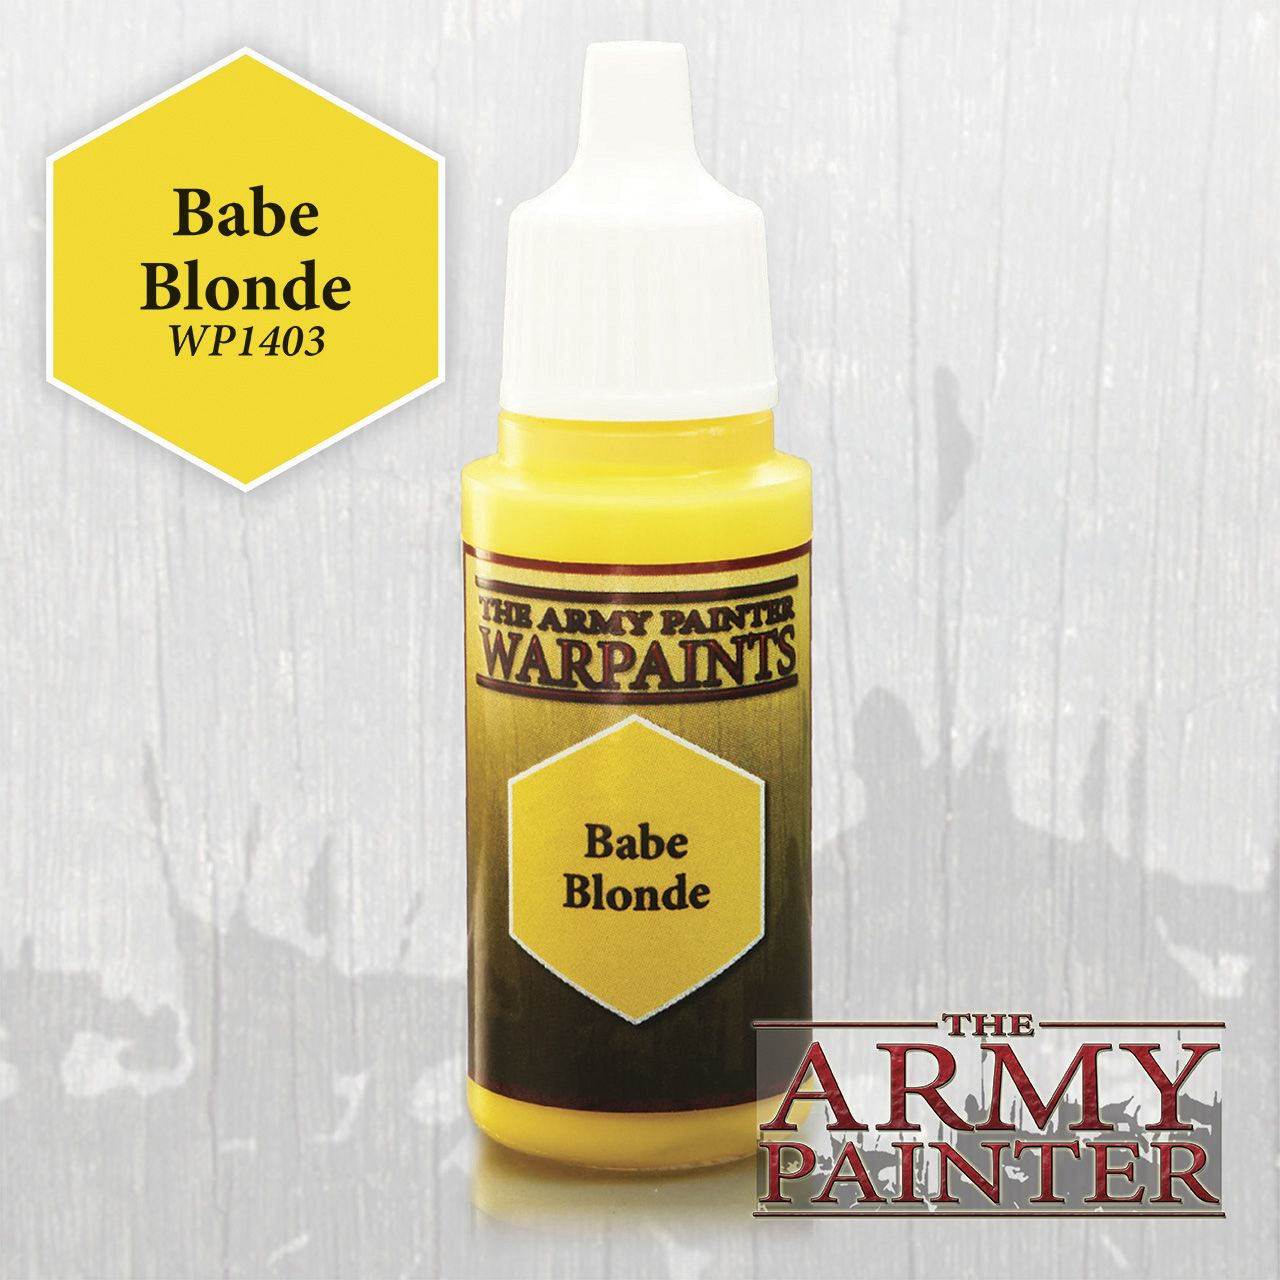 Babe Blonde, 18ml